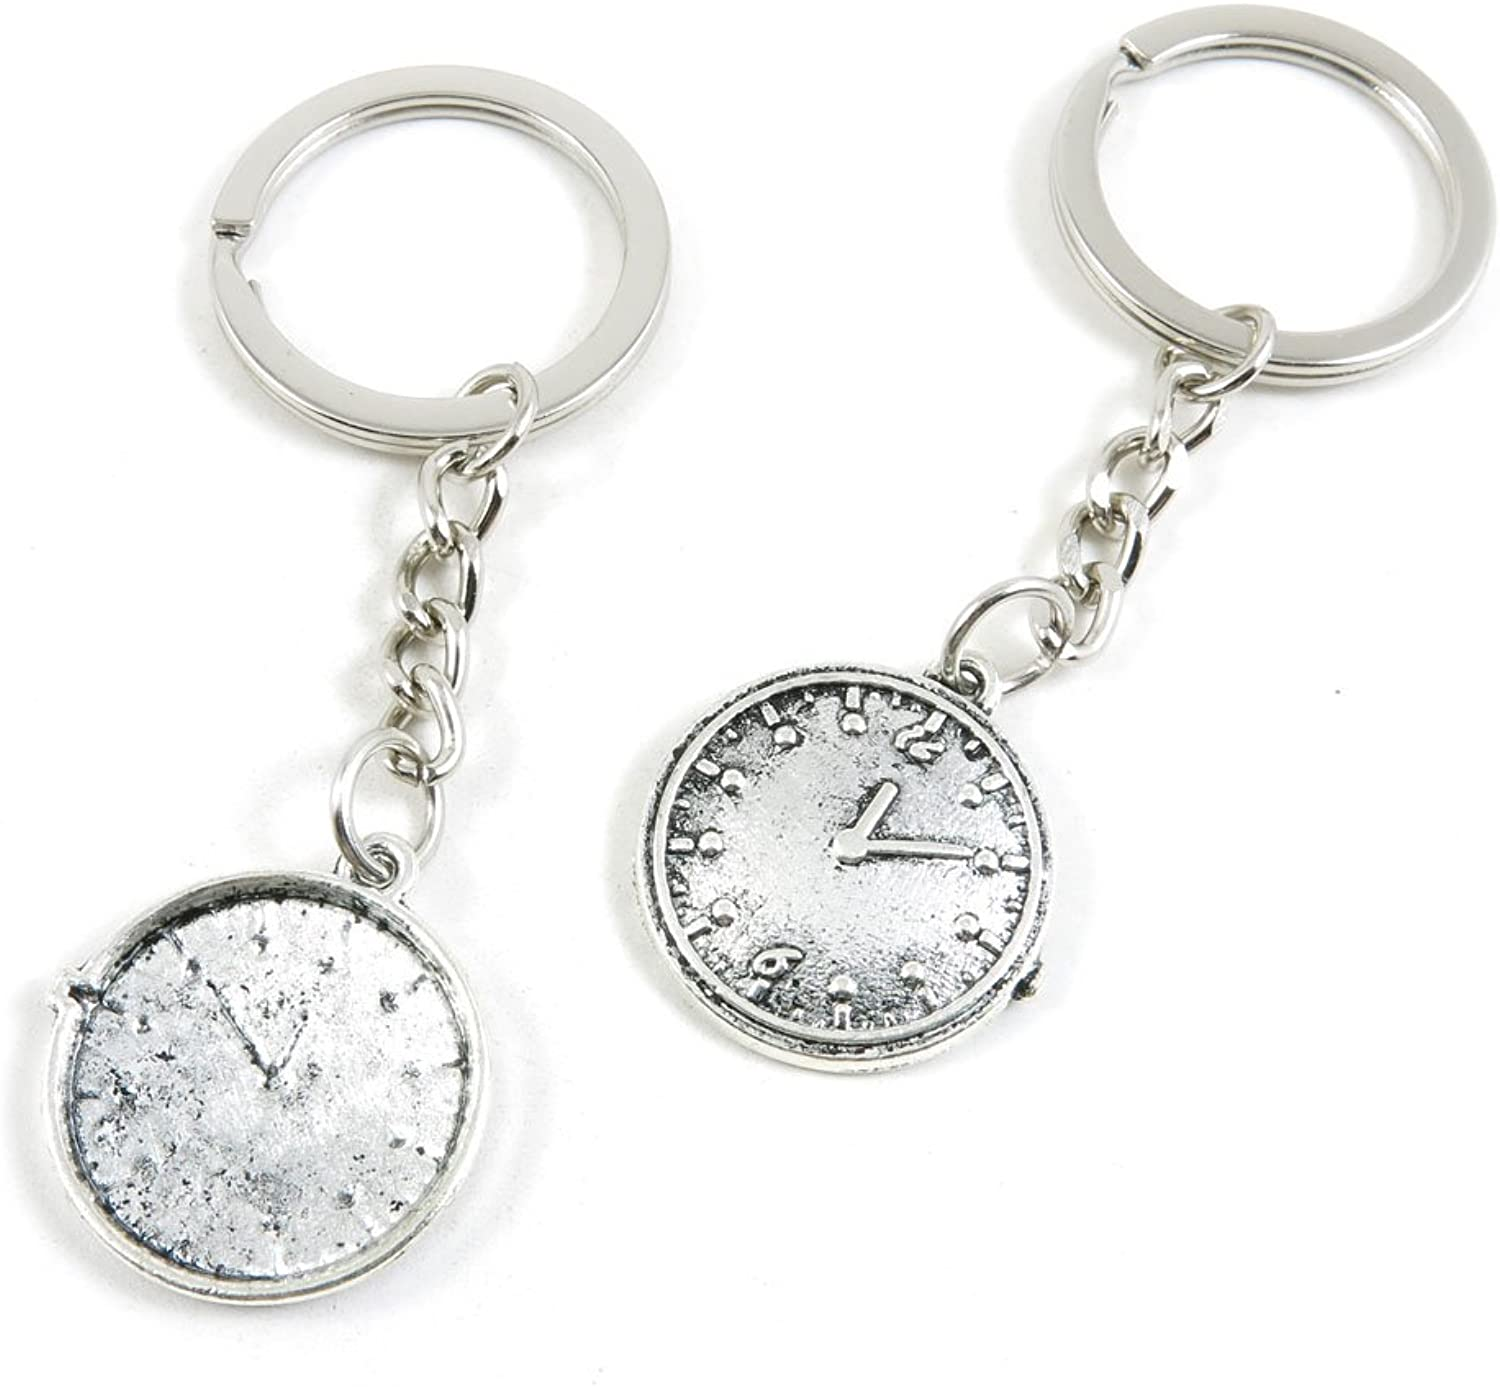 180 Pieces Fashion Jewelry Keyring Keychain Door Car Key Tag Ring Chain Supplier Supply Wholesale Bulk Lots Z6TR6 Time Clock